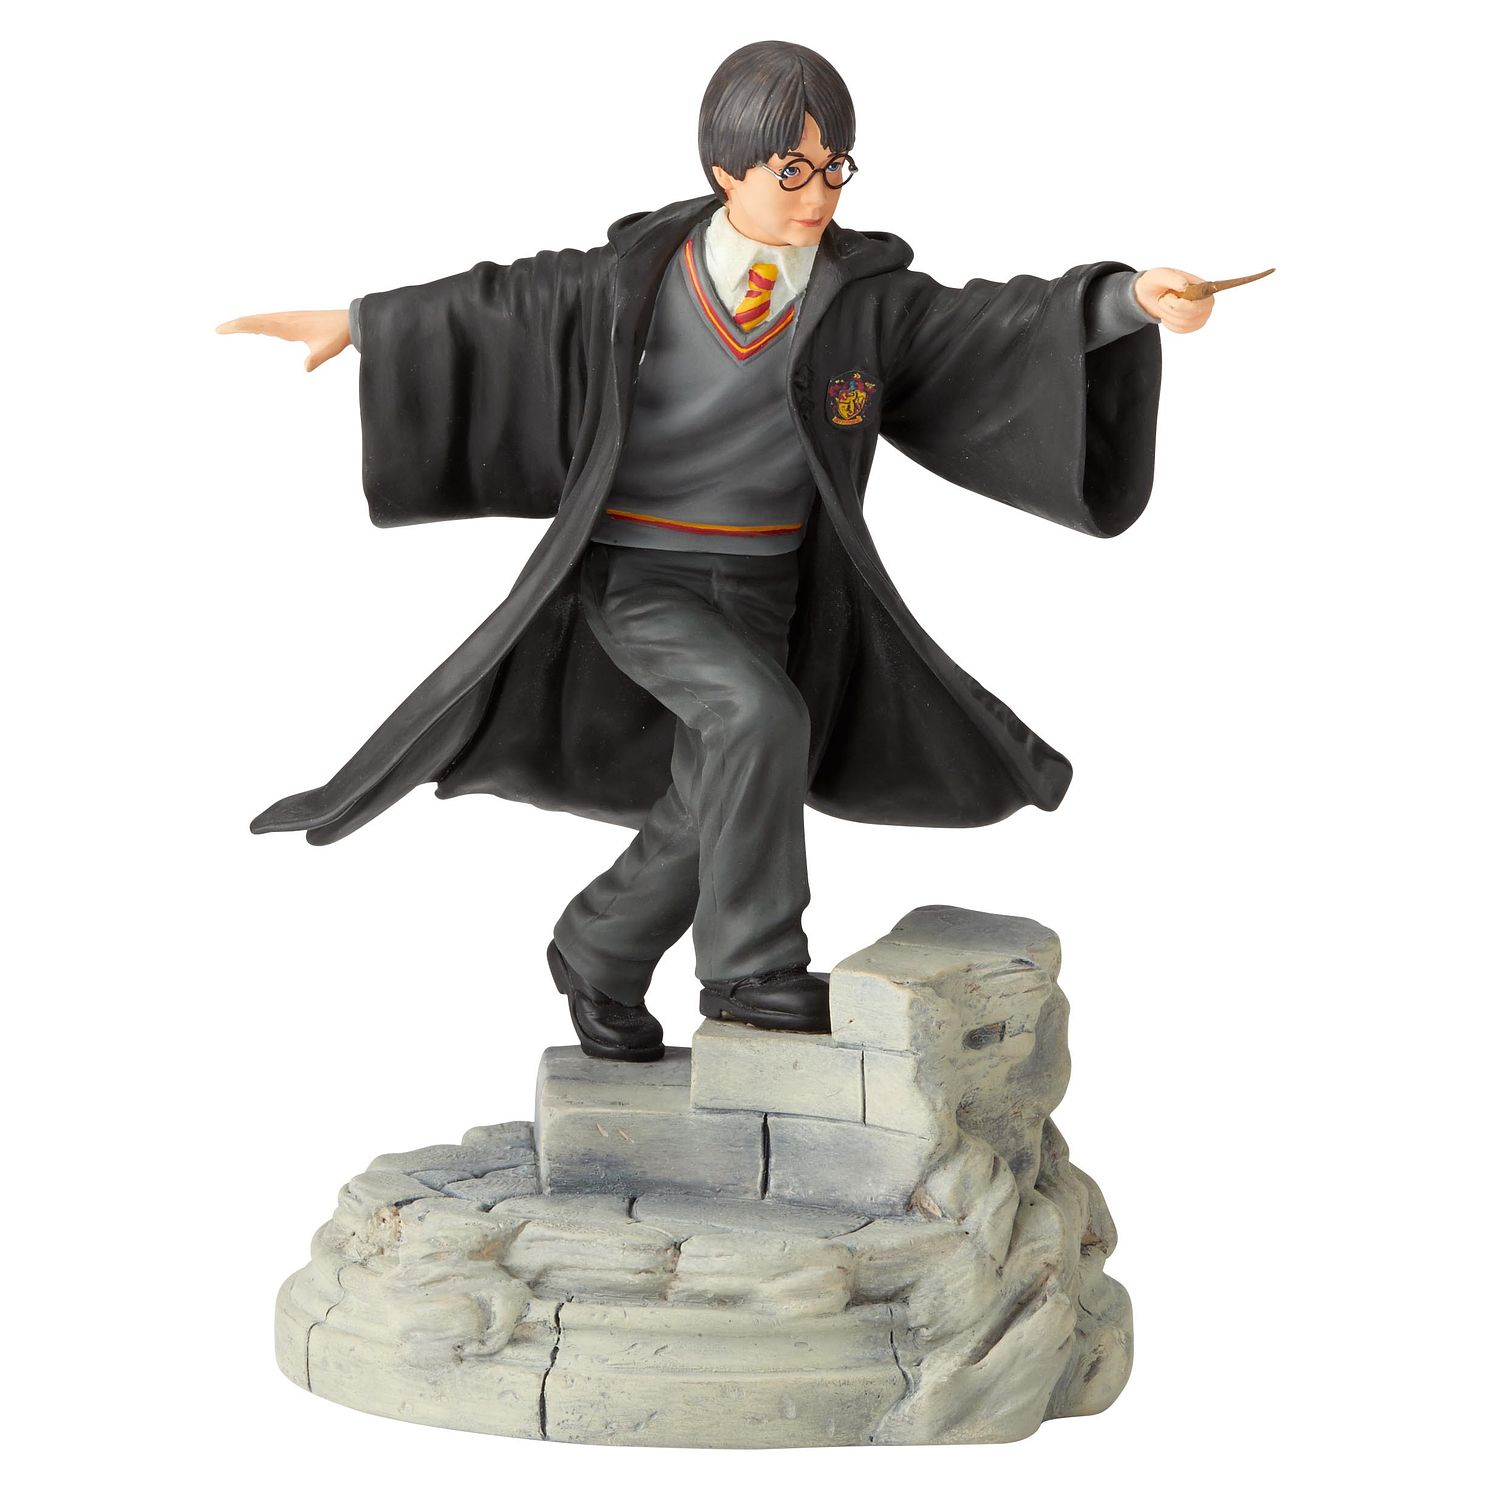 Harry Potter Wizarding World Year 1 Harry Figurine - Product number 1754637